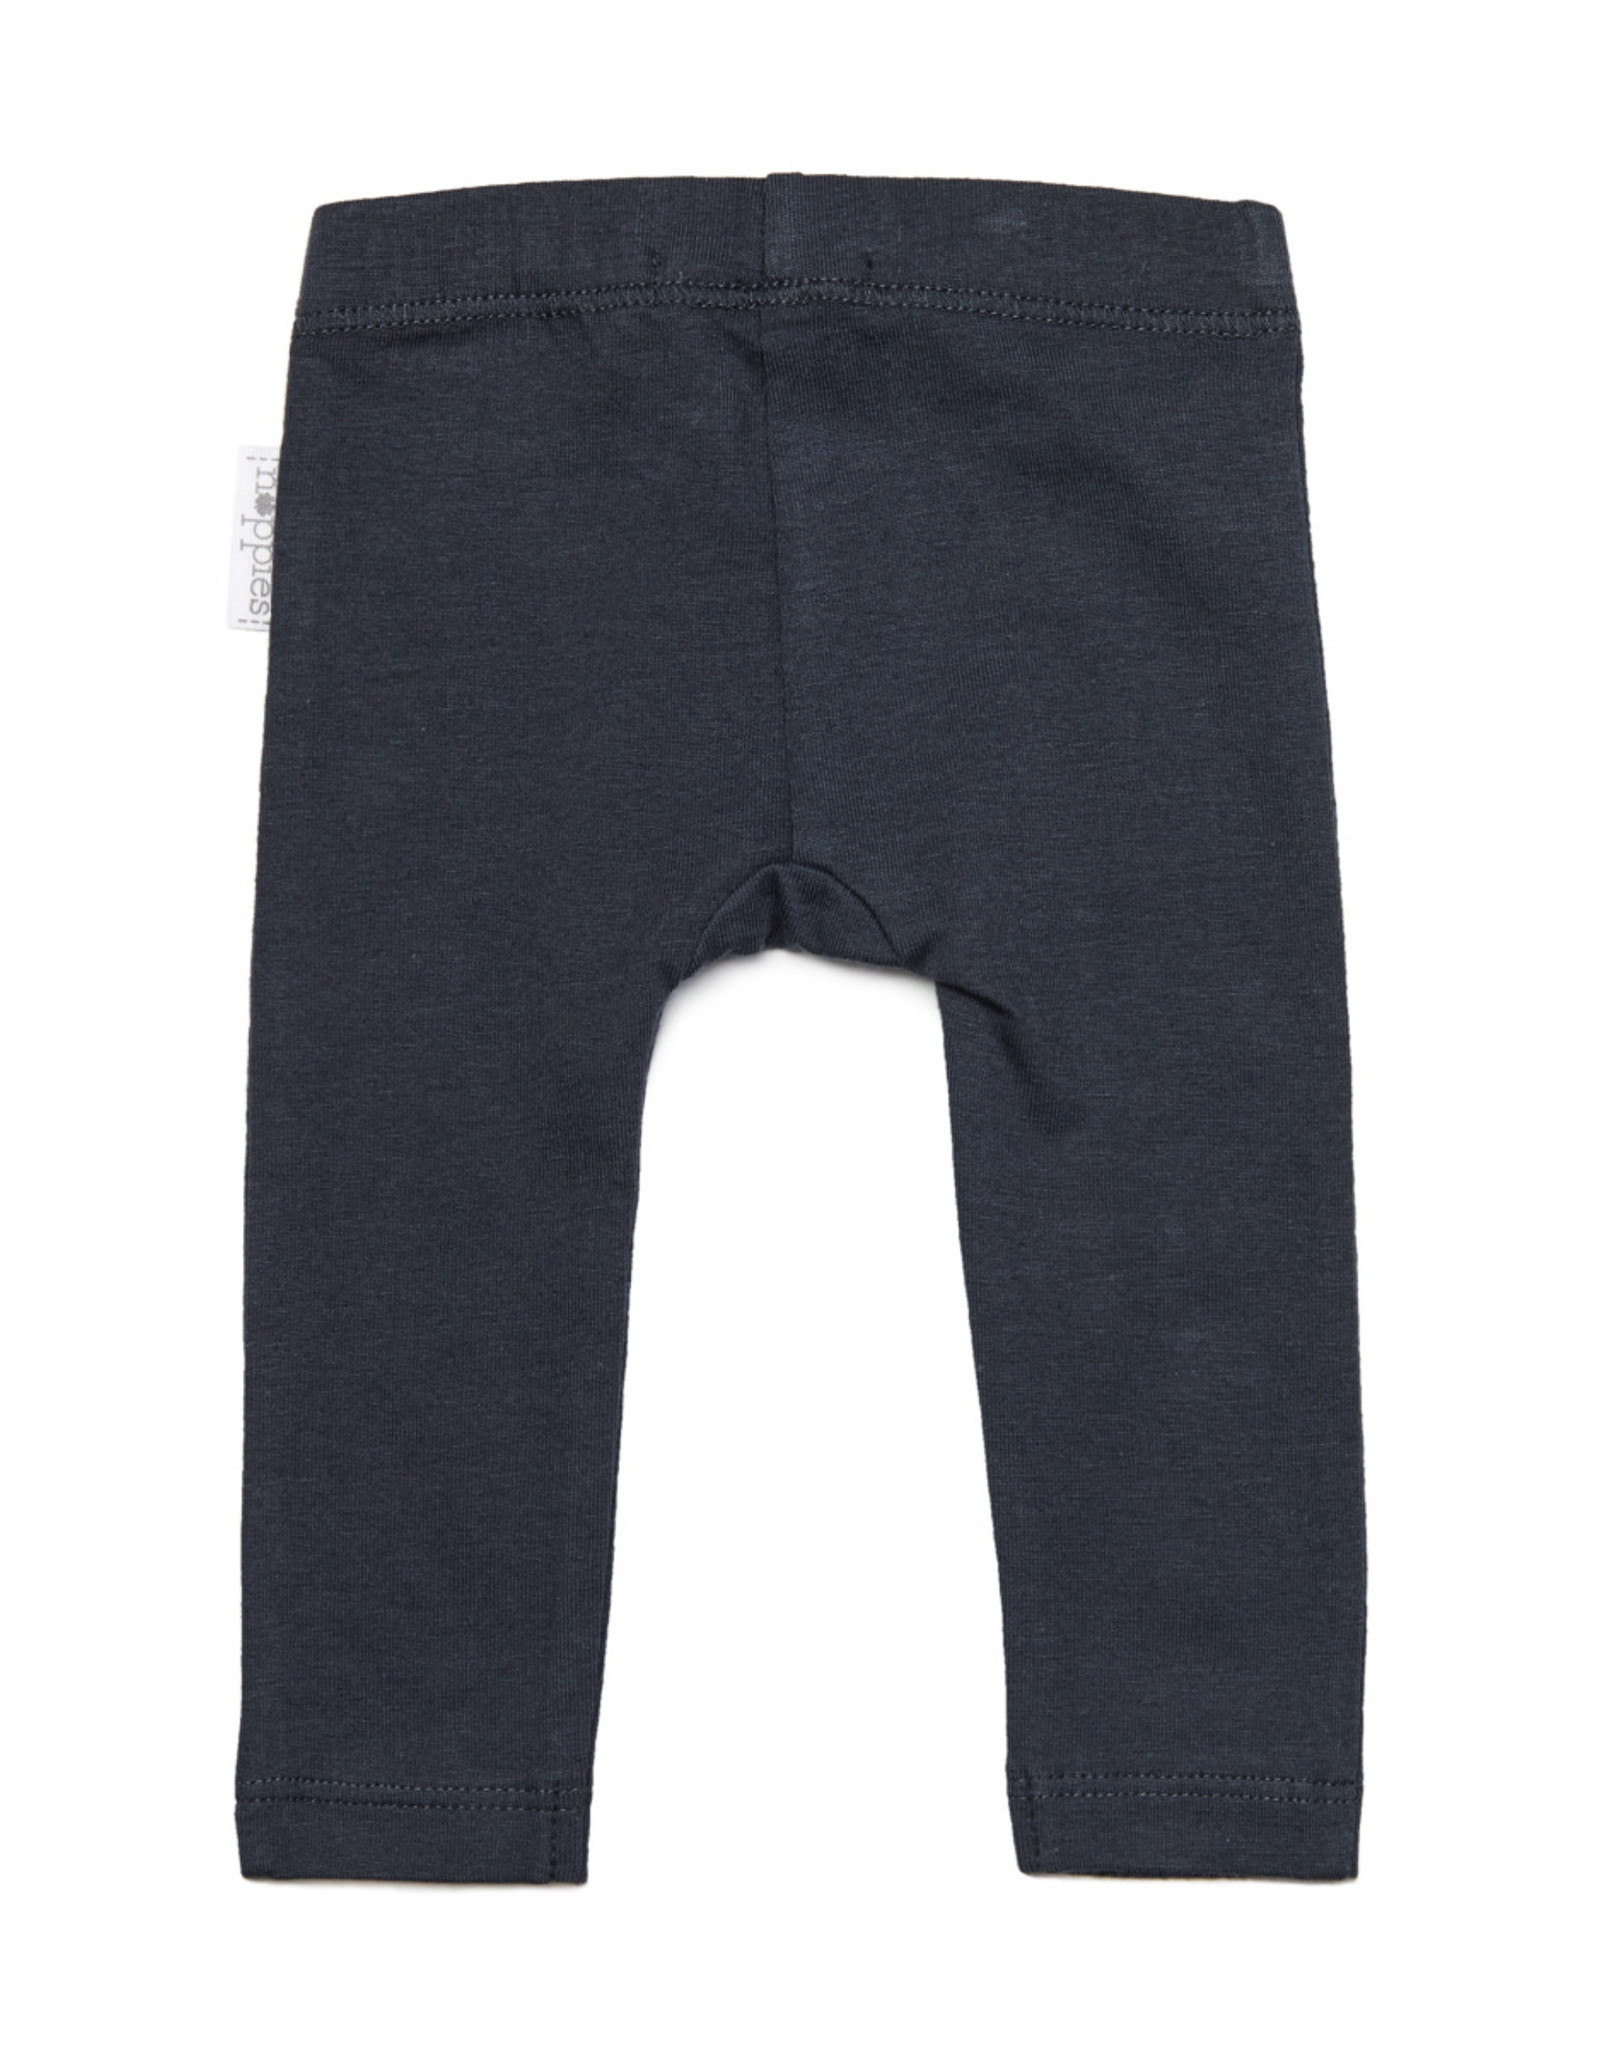 Noppies G legging ankle Angie charcoal